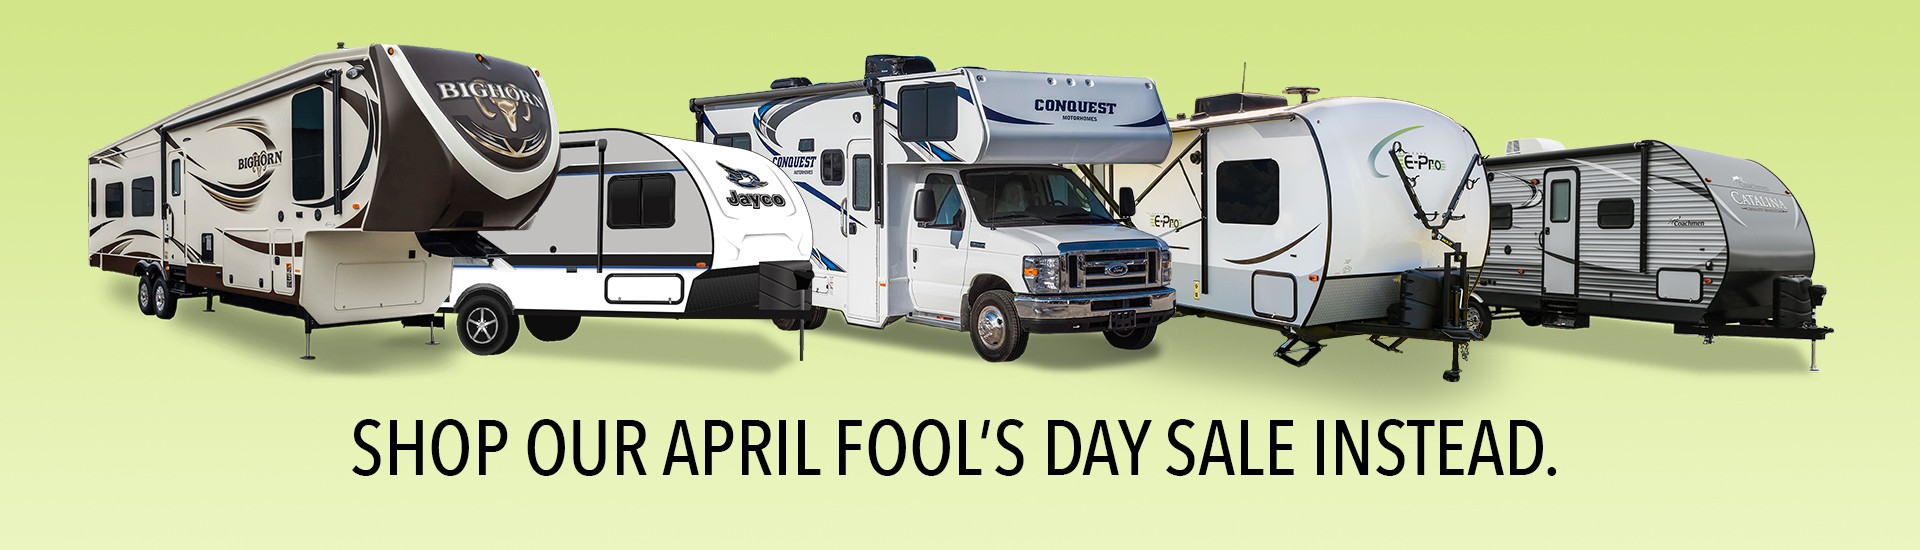 Shop Gillett's Interstate RV April Fool's Day Sale